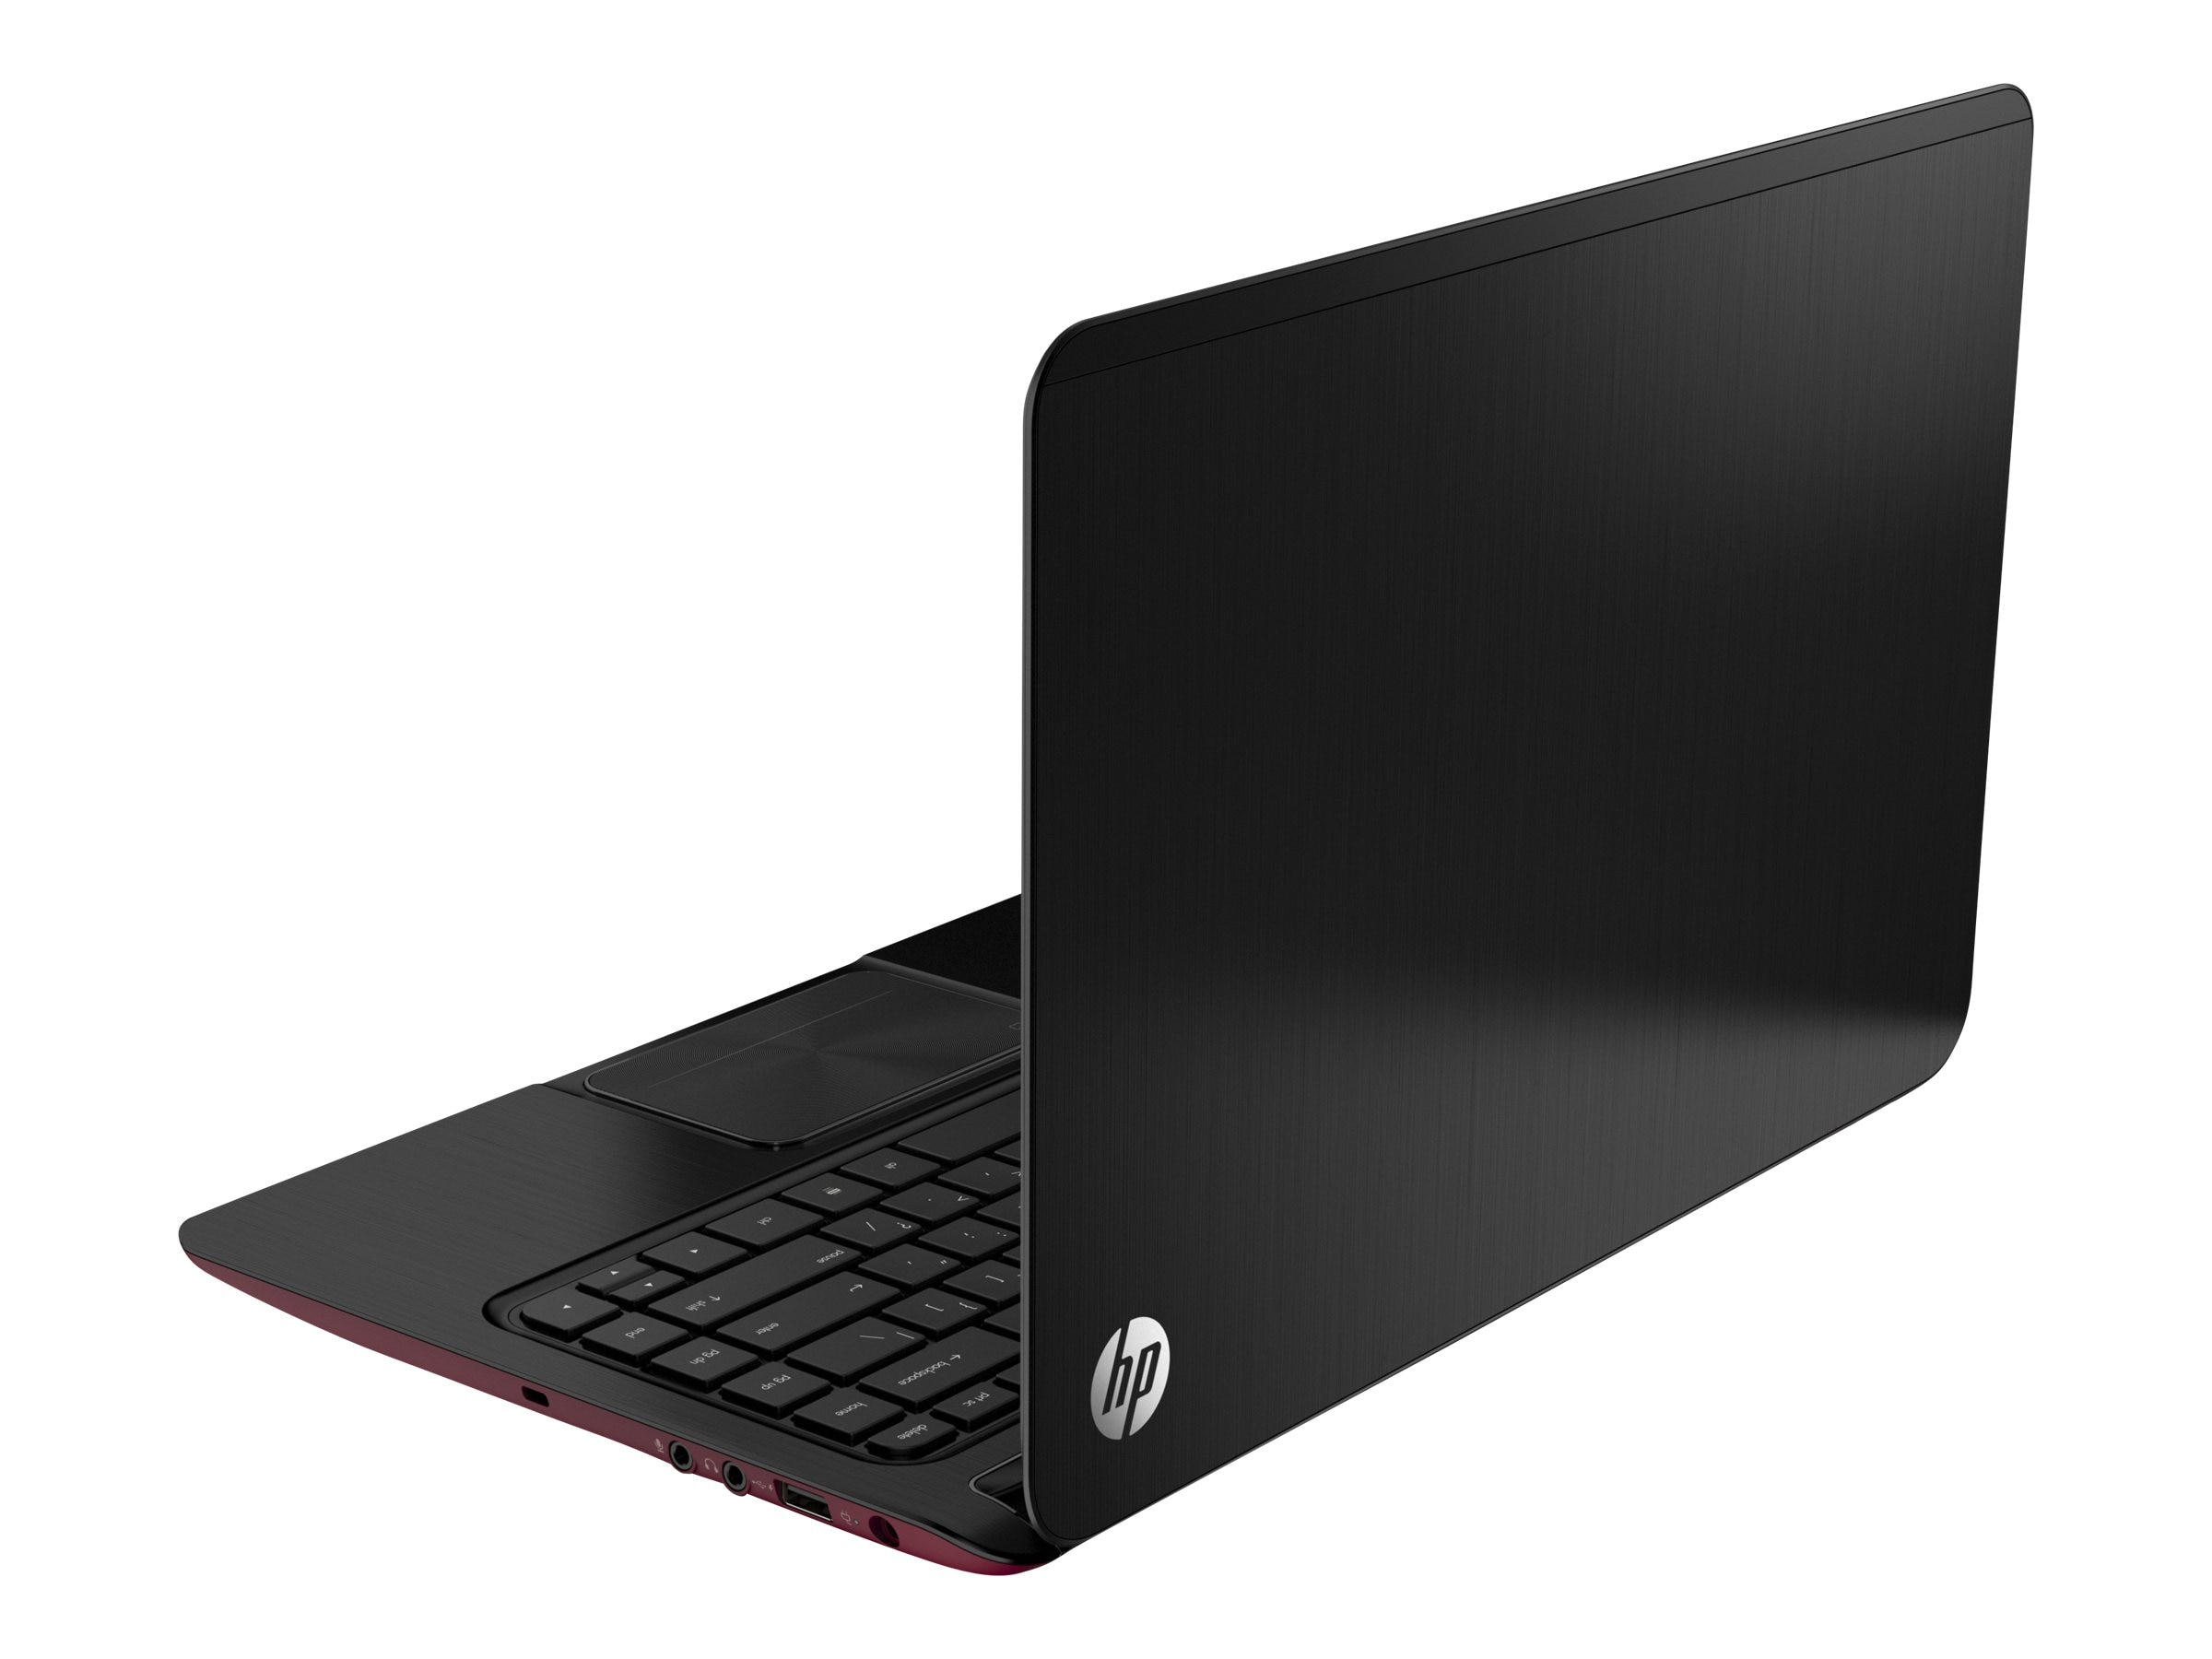 HP Envy 6-1110us : 2.1GHz A6 Series 15.6in display